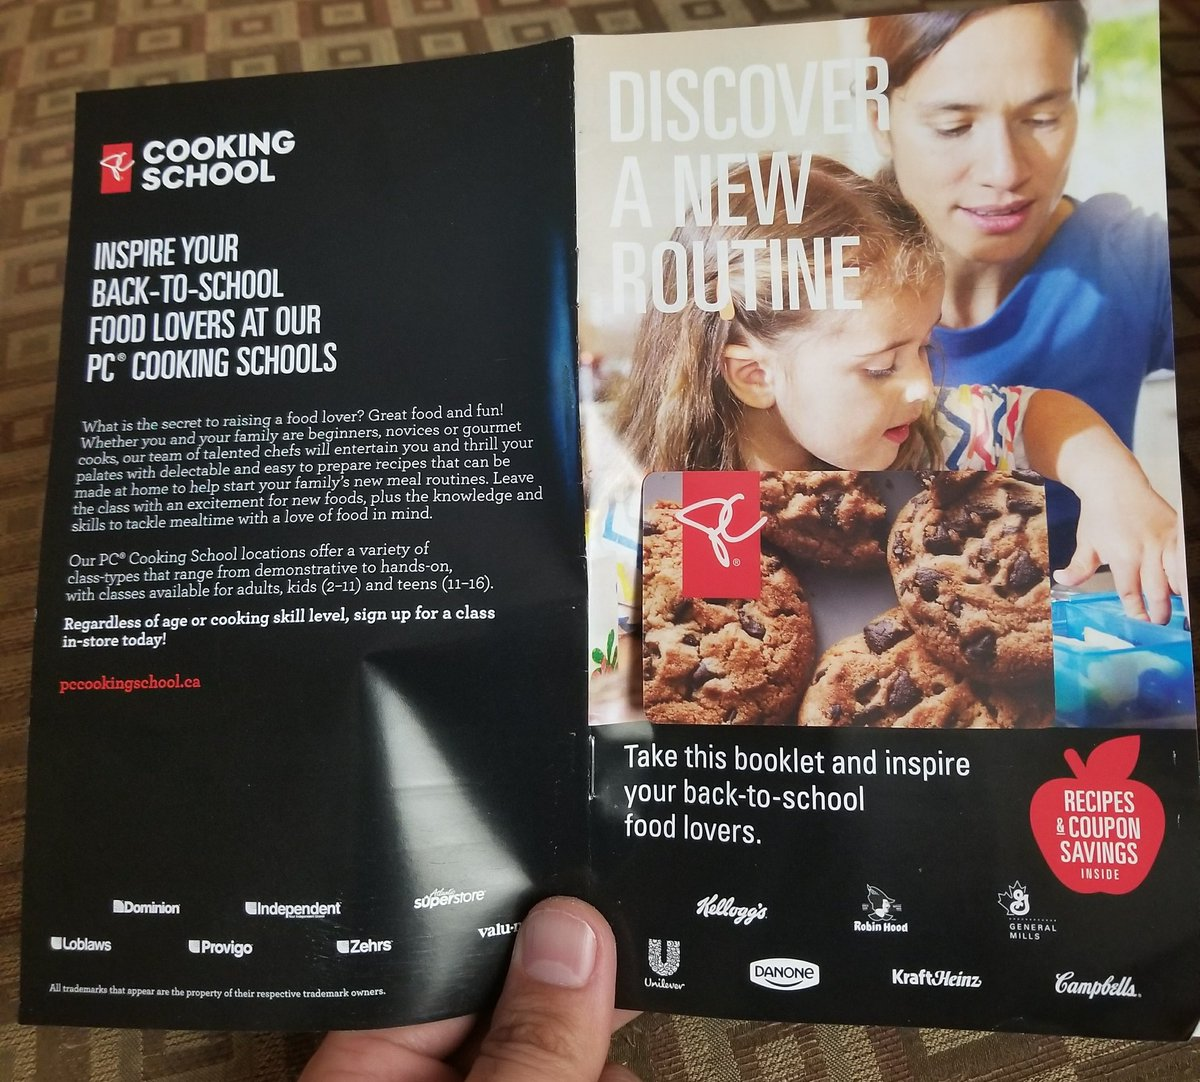 """test Twitter Media - I thought it said """"Discover a new poutine"""" and I came this close to signing up for a new favourite cooking school. https://t.co/ApMxW5AtwH"""